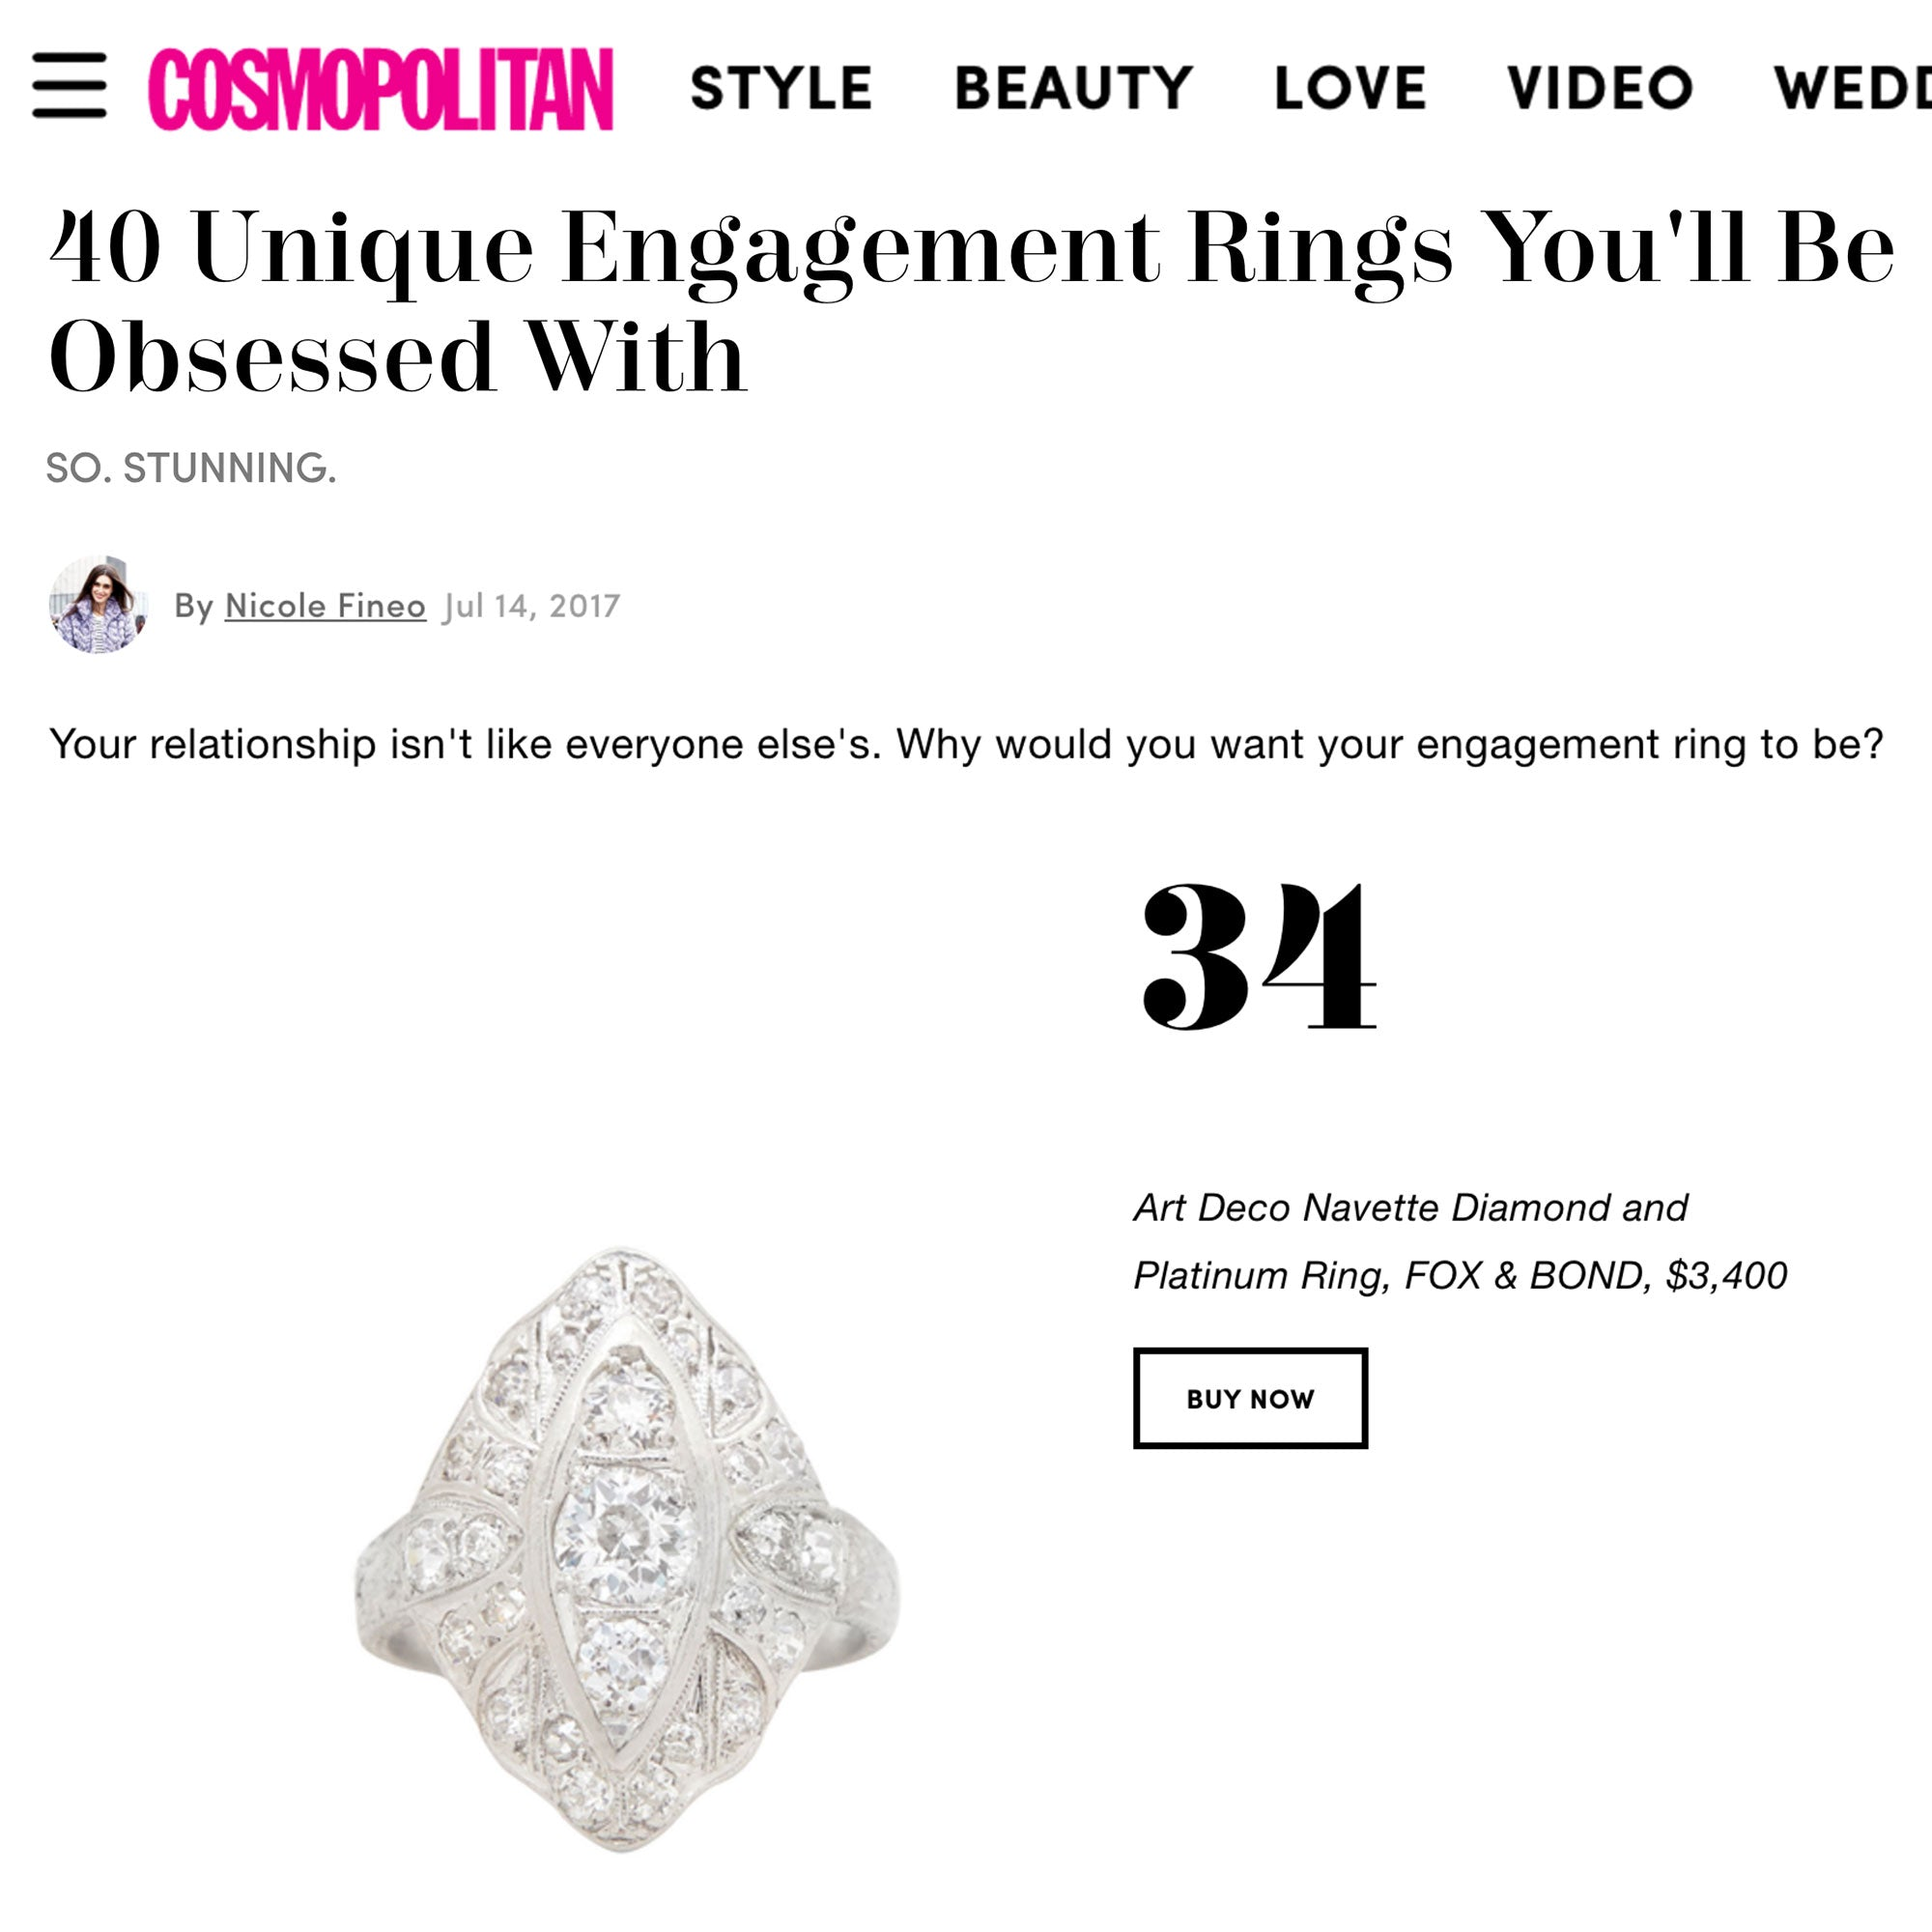 Cosmopolitan.com: 40 Unique Engagement Rings You'll Be Obsessed With